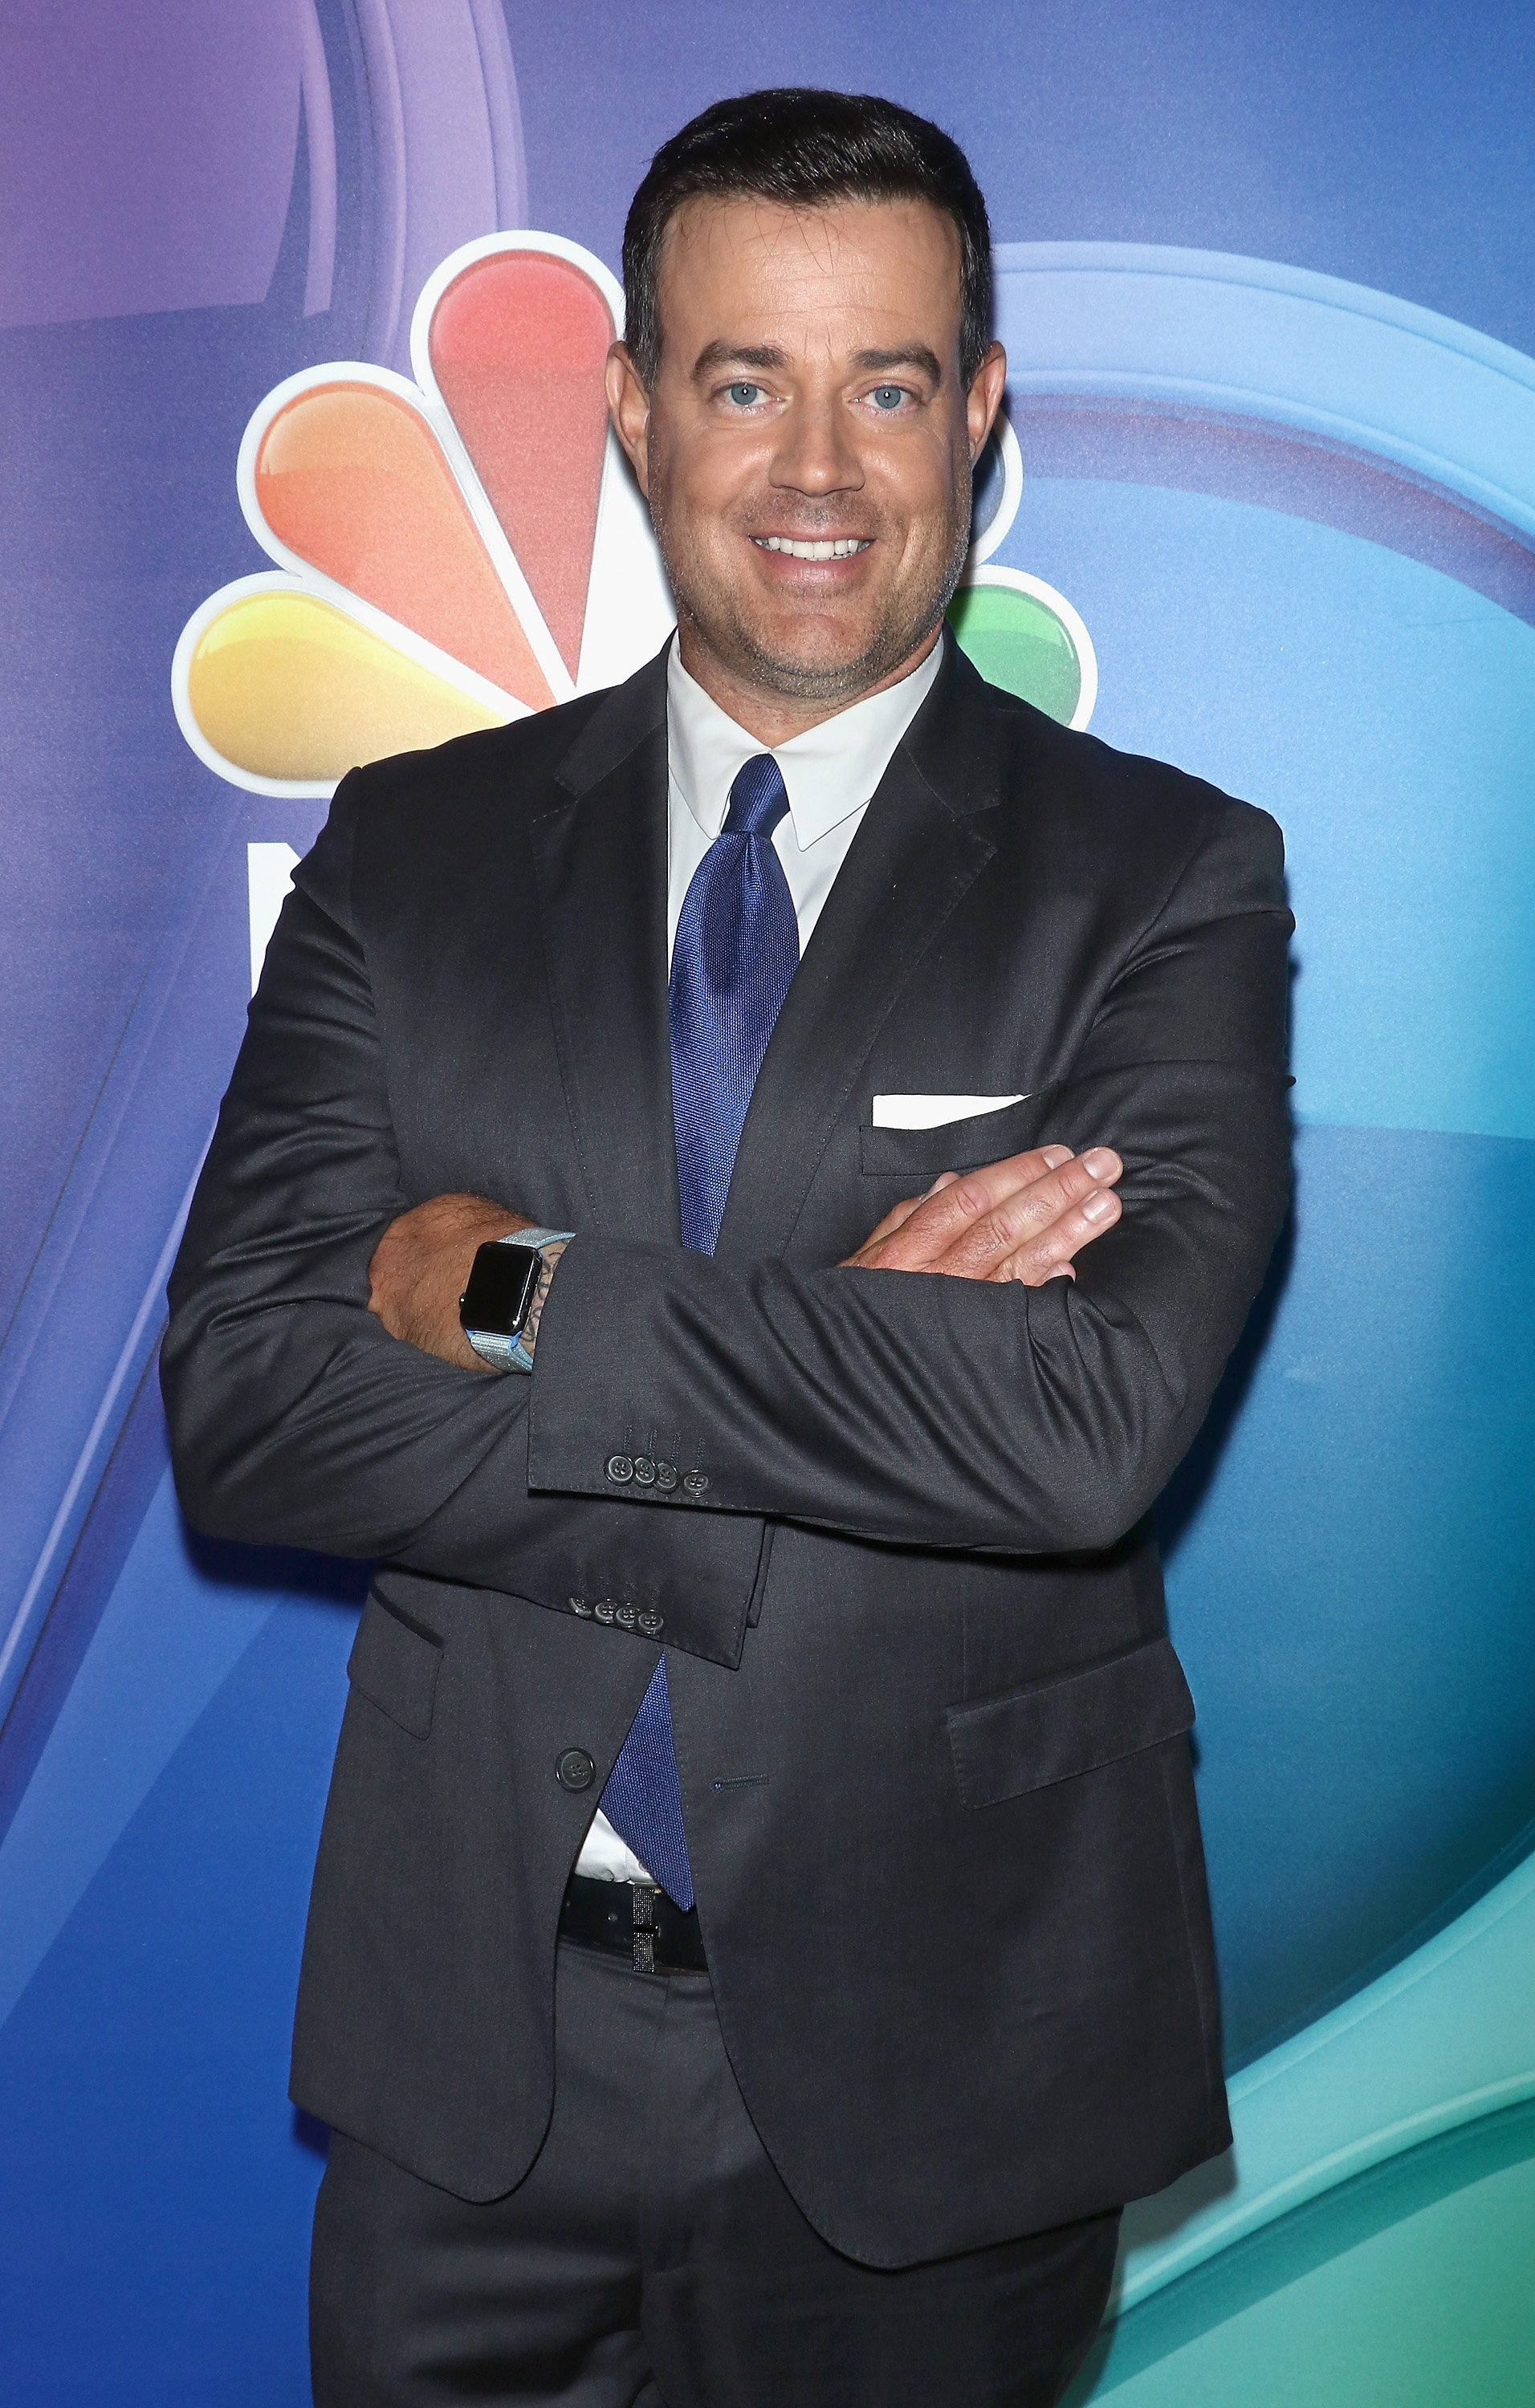 Carson Daly Image Source: Getty Images.